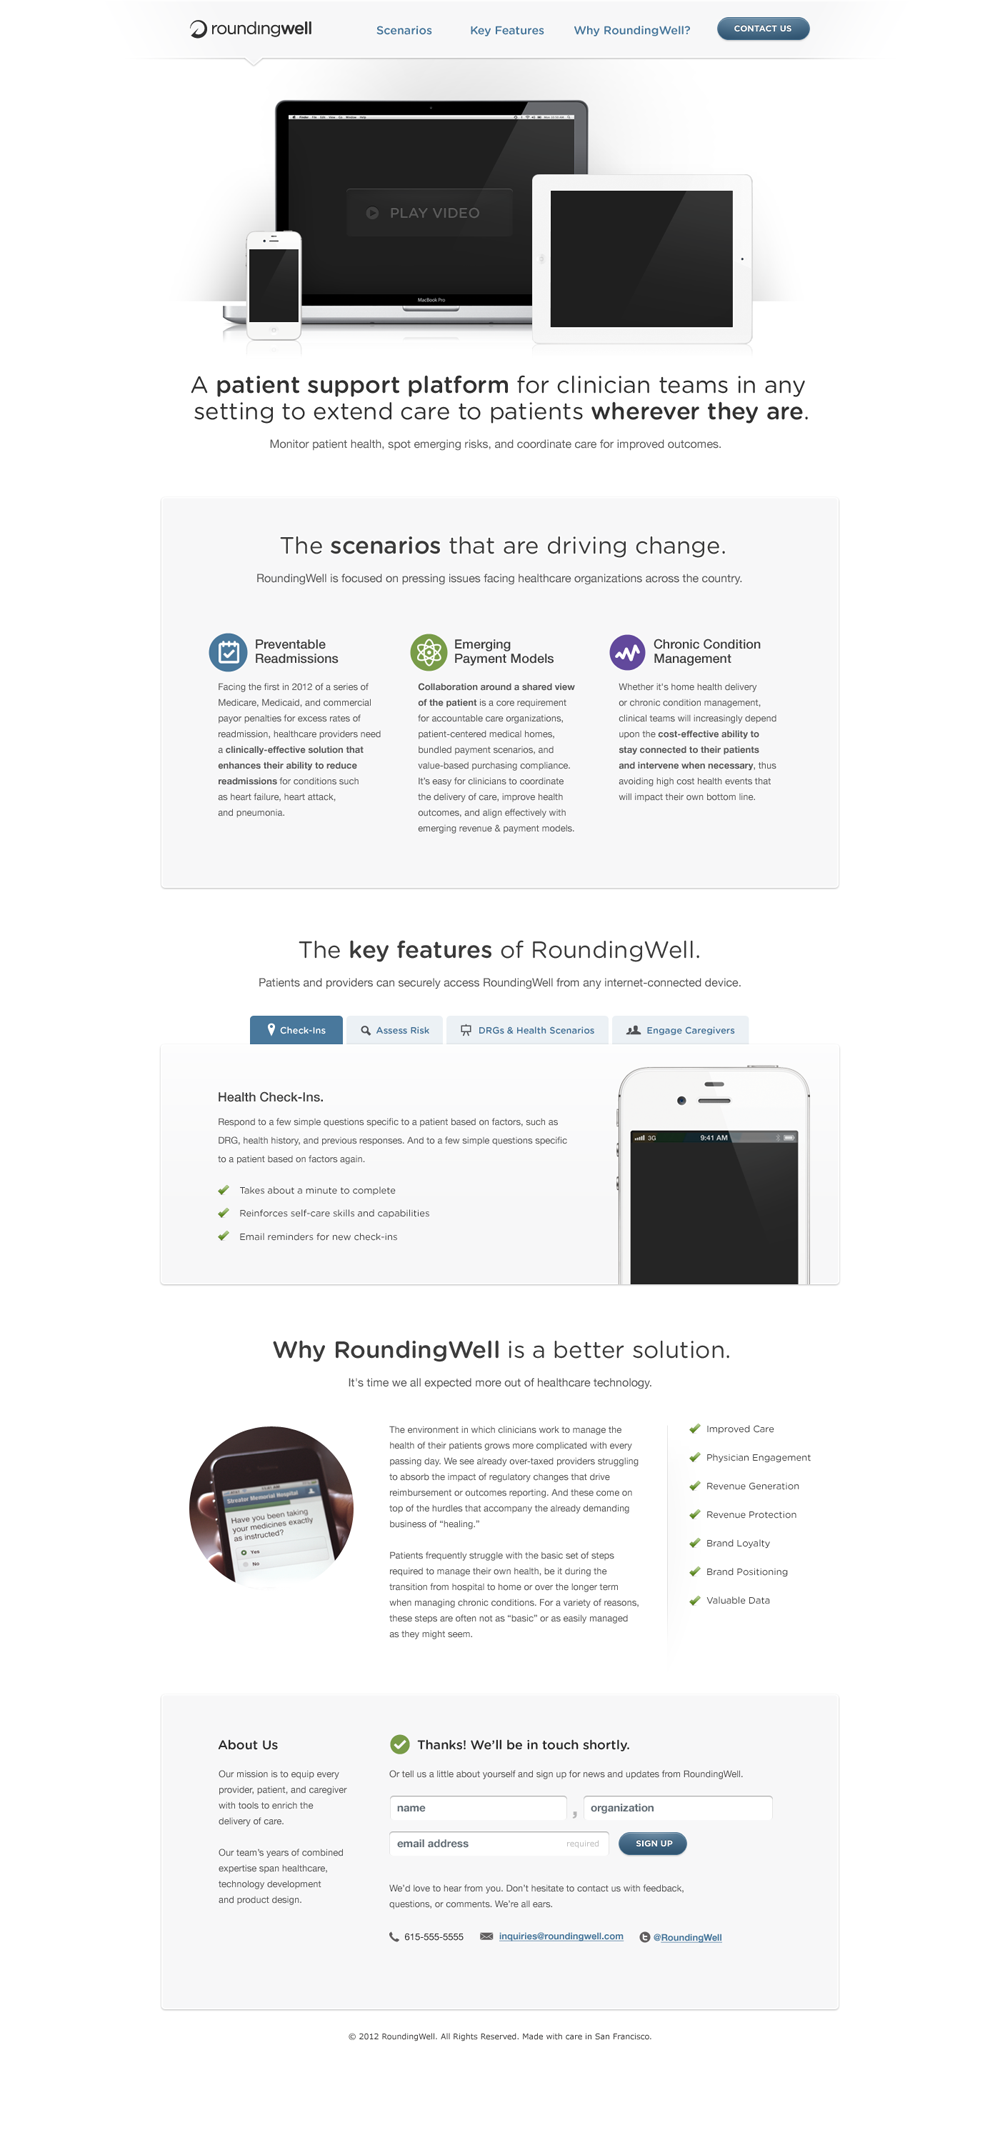 healthcare-landing-page.png by Brad Haynes